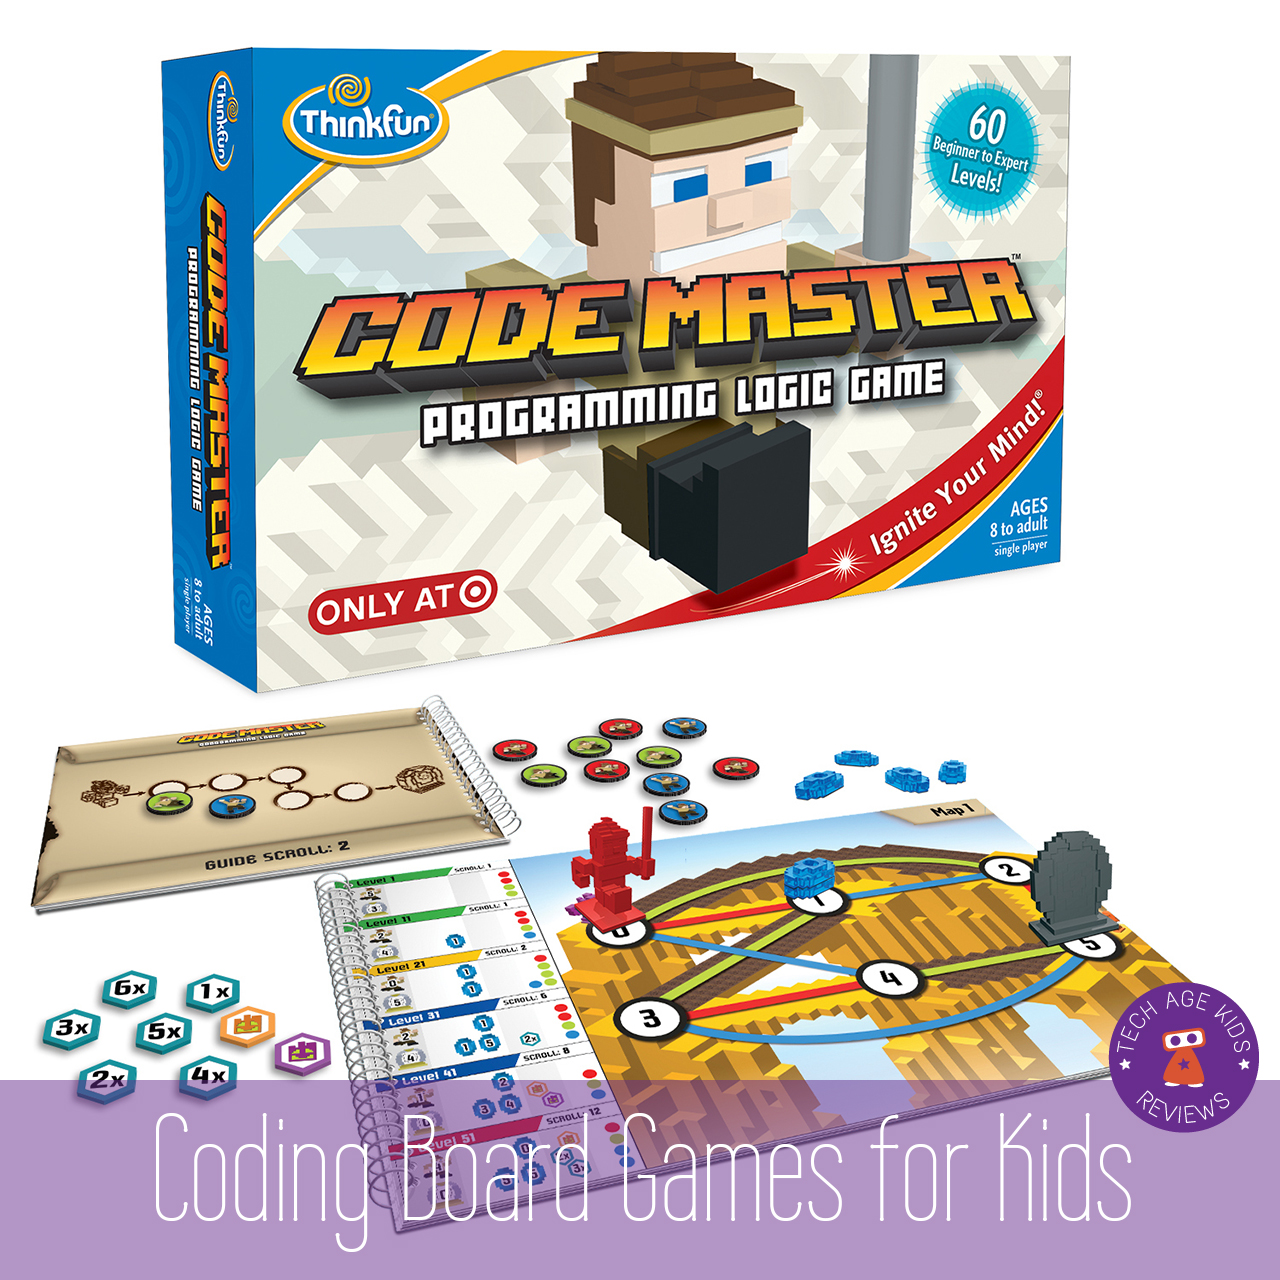 Toys For Games : Board games that teach coding concepts to kids and teens